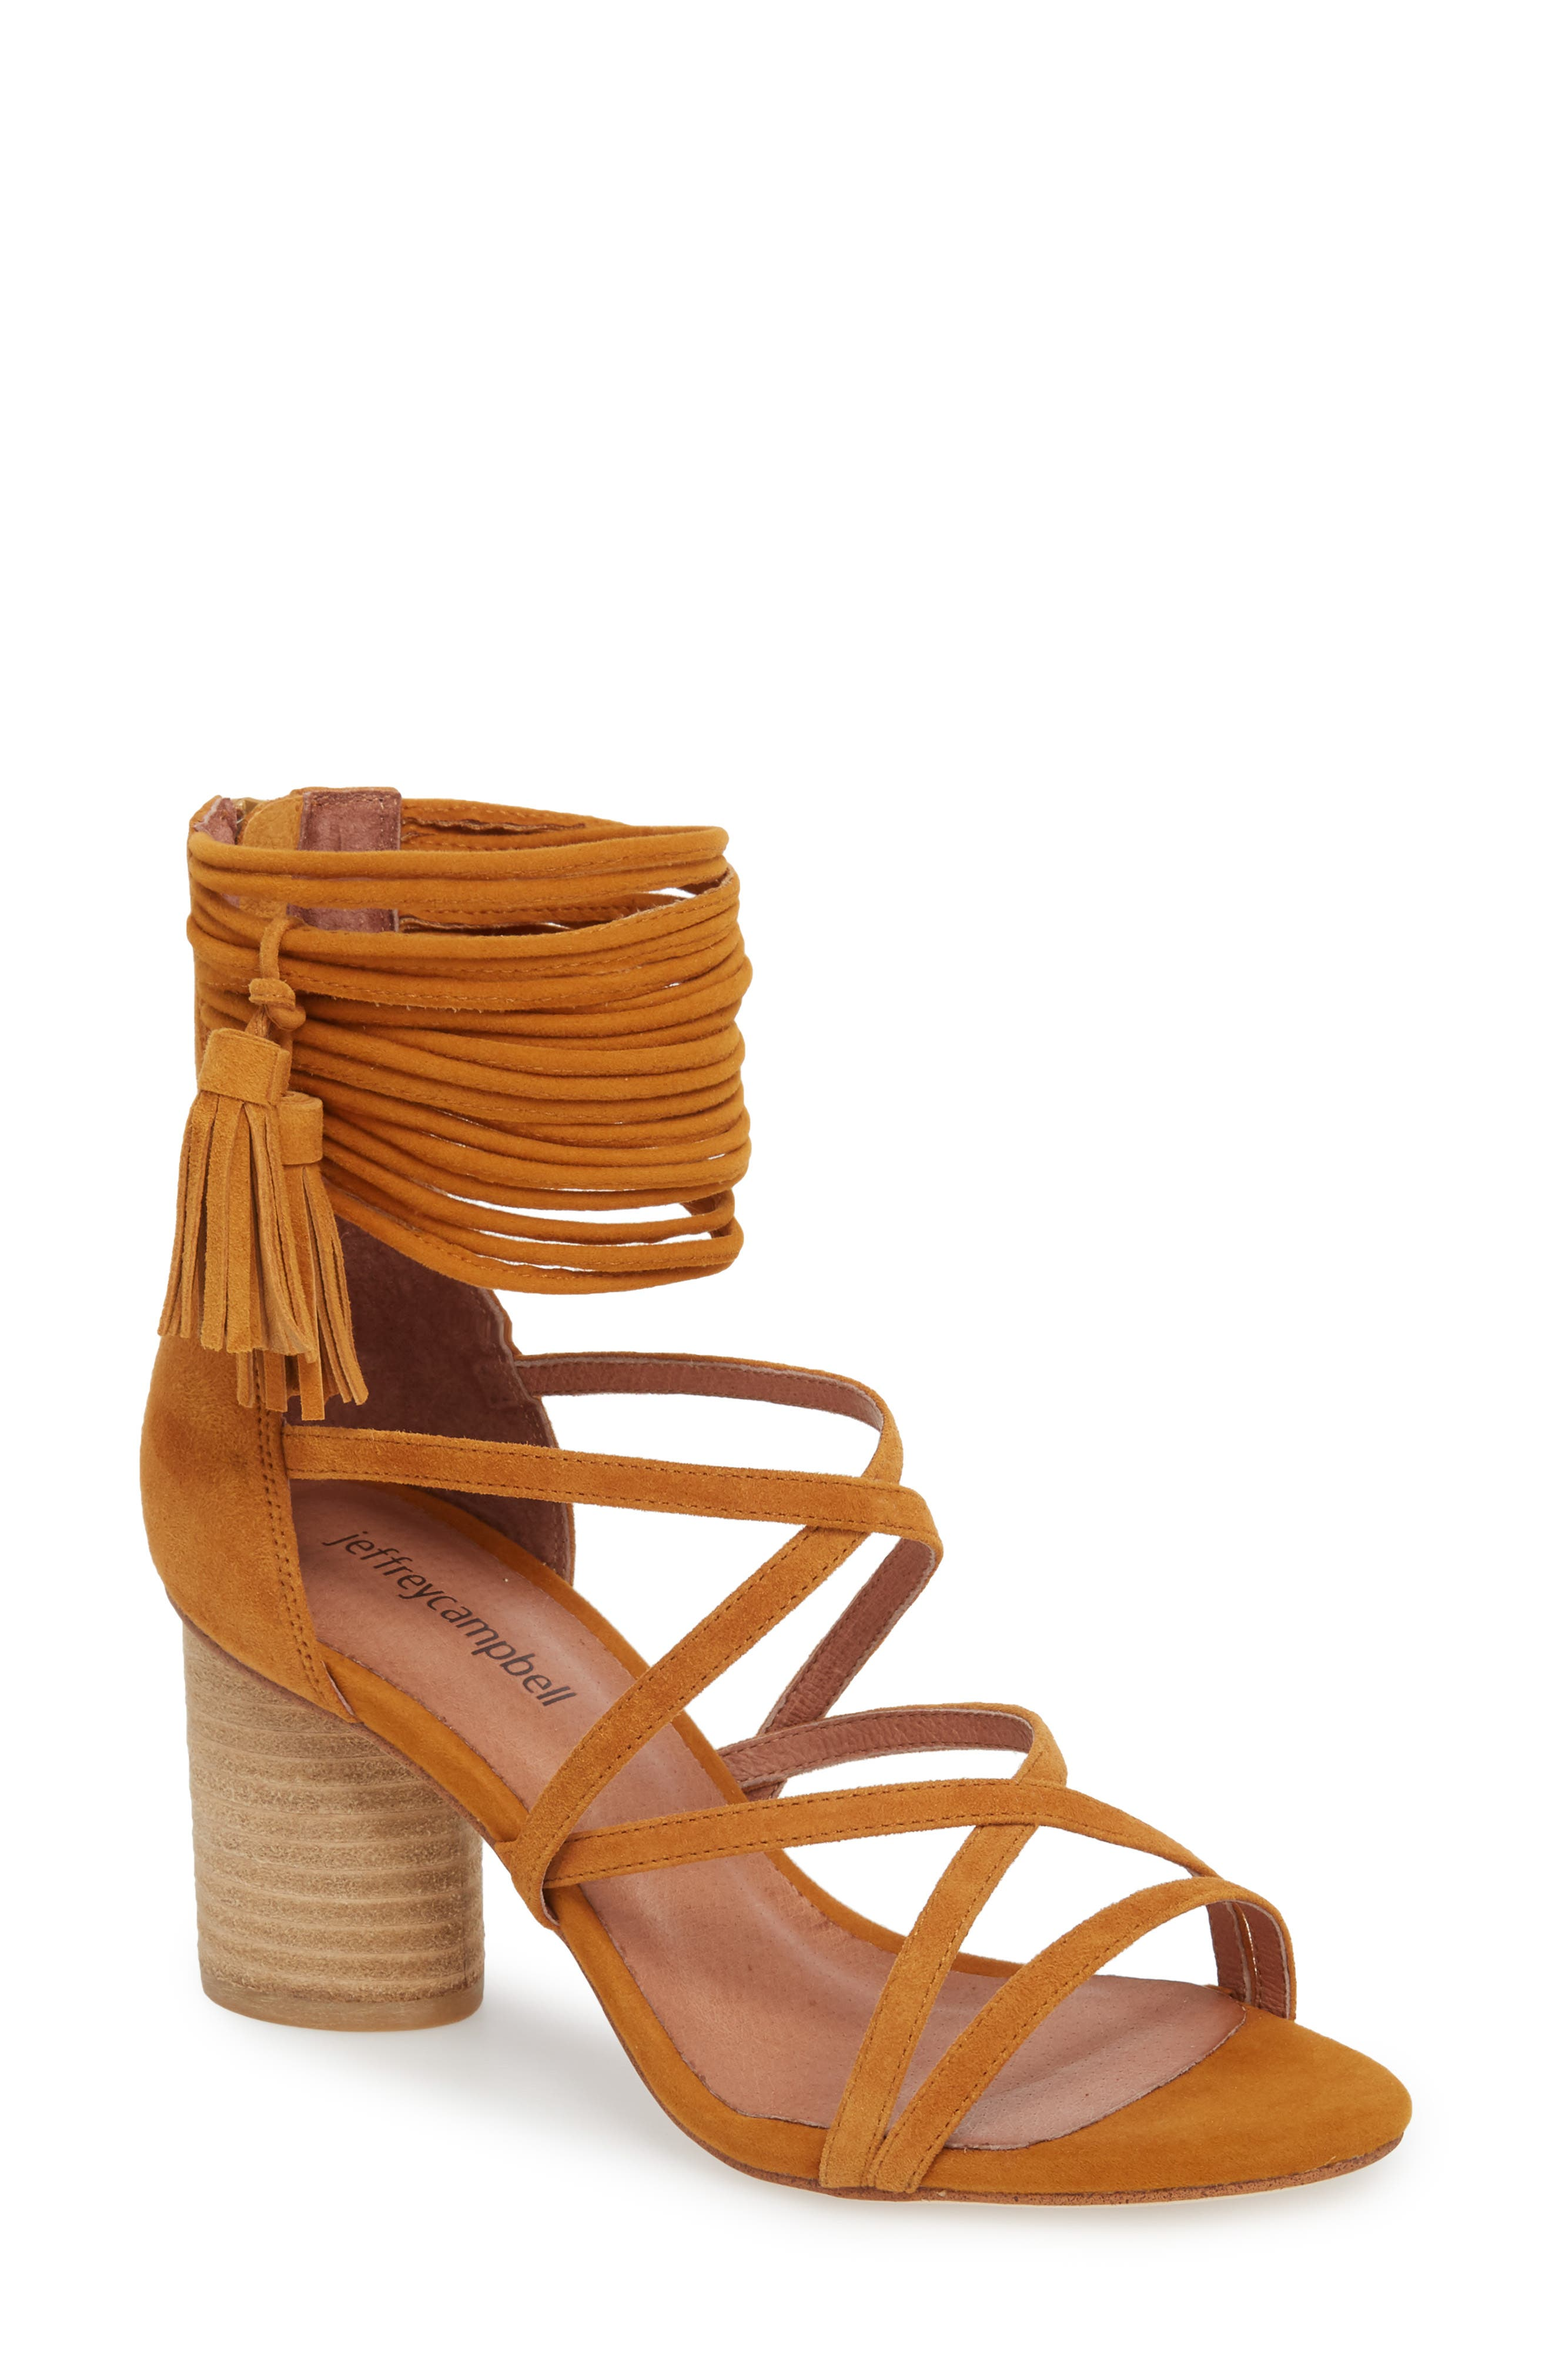 'Despina' Strappy Sandal,                             Main thumbnail 1, color,                             Mustard Suede